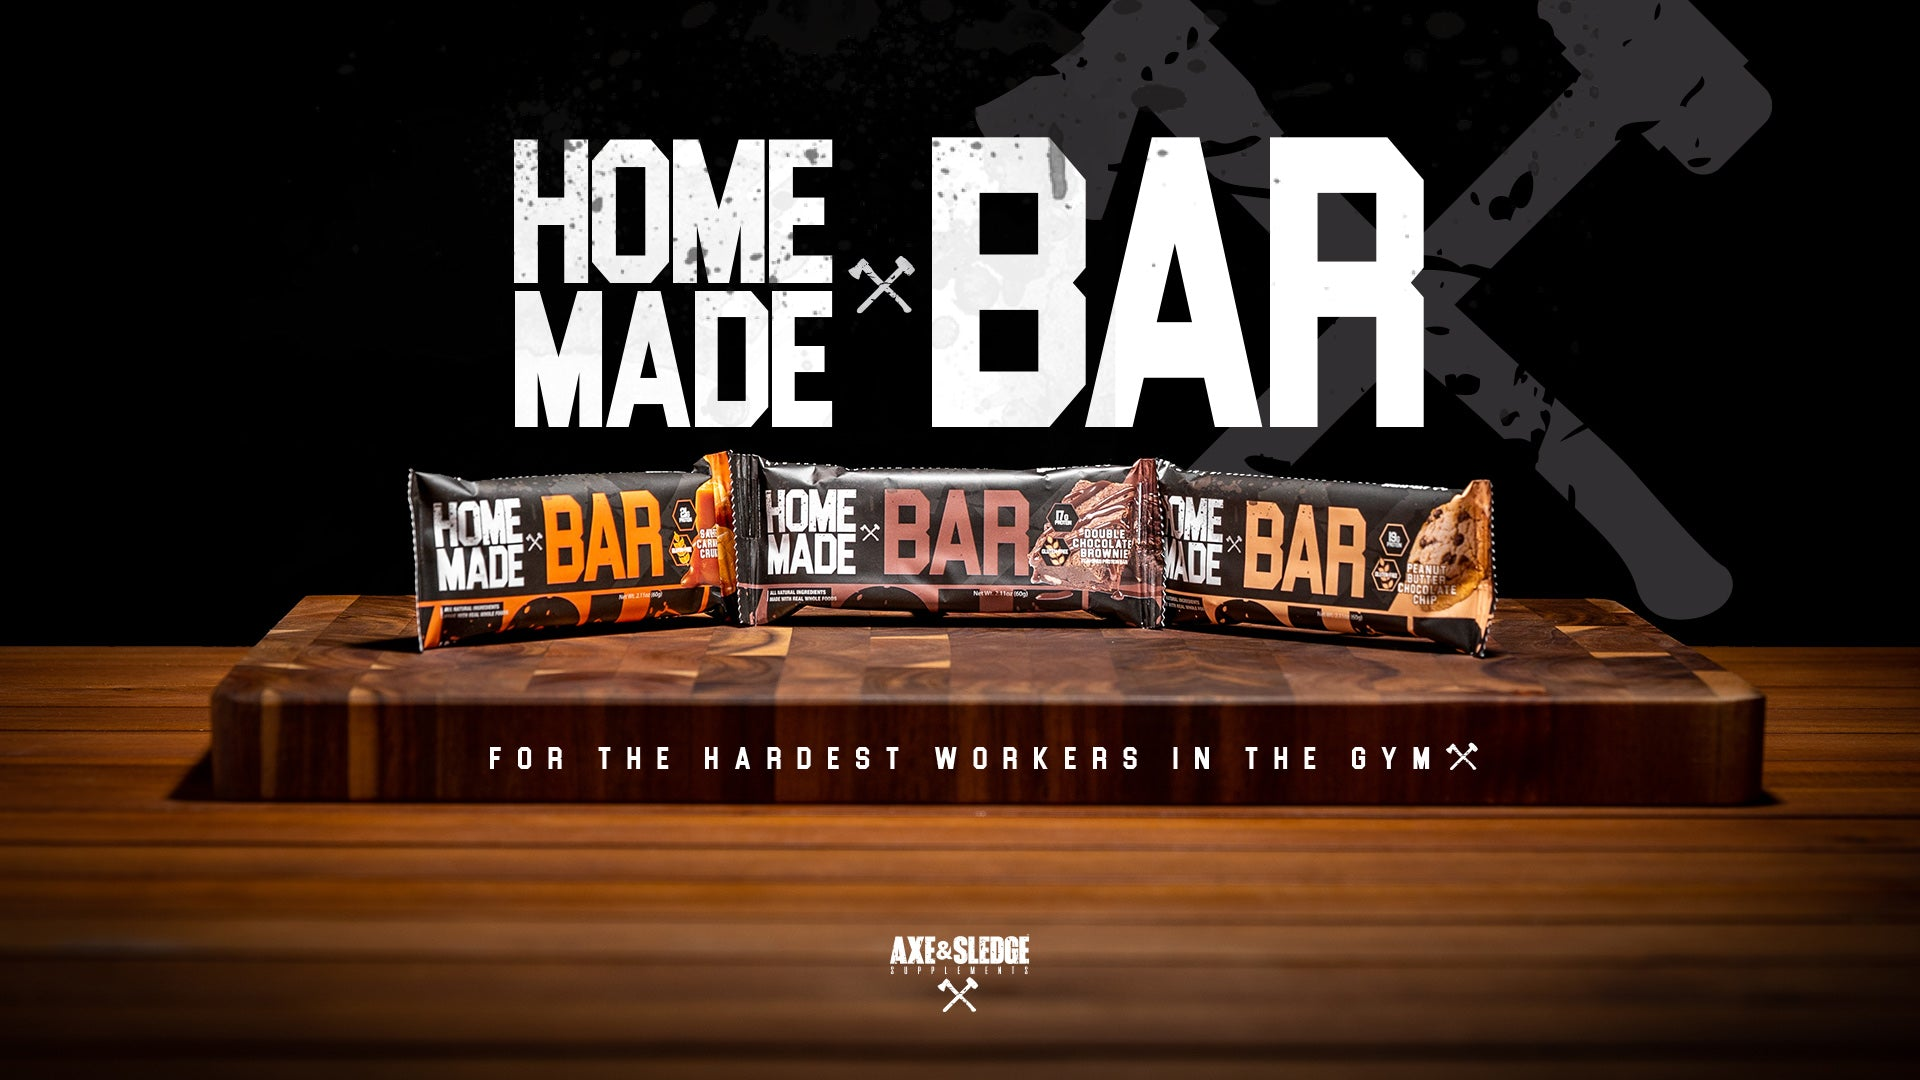 The Home Made Bar: Snack King Approved!